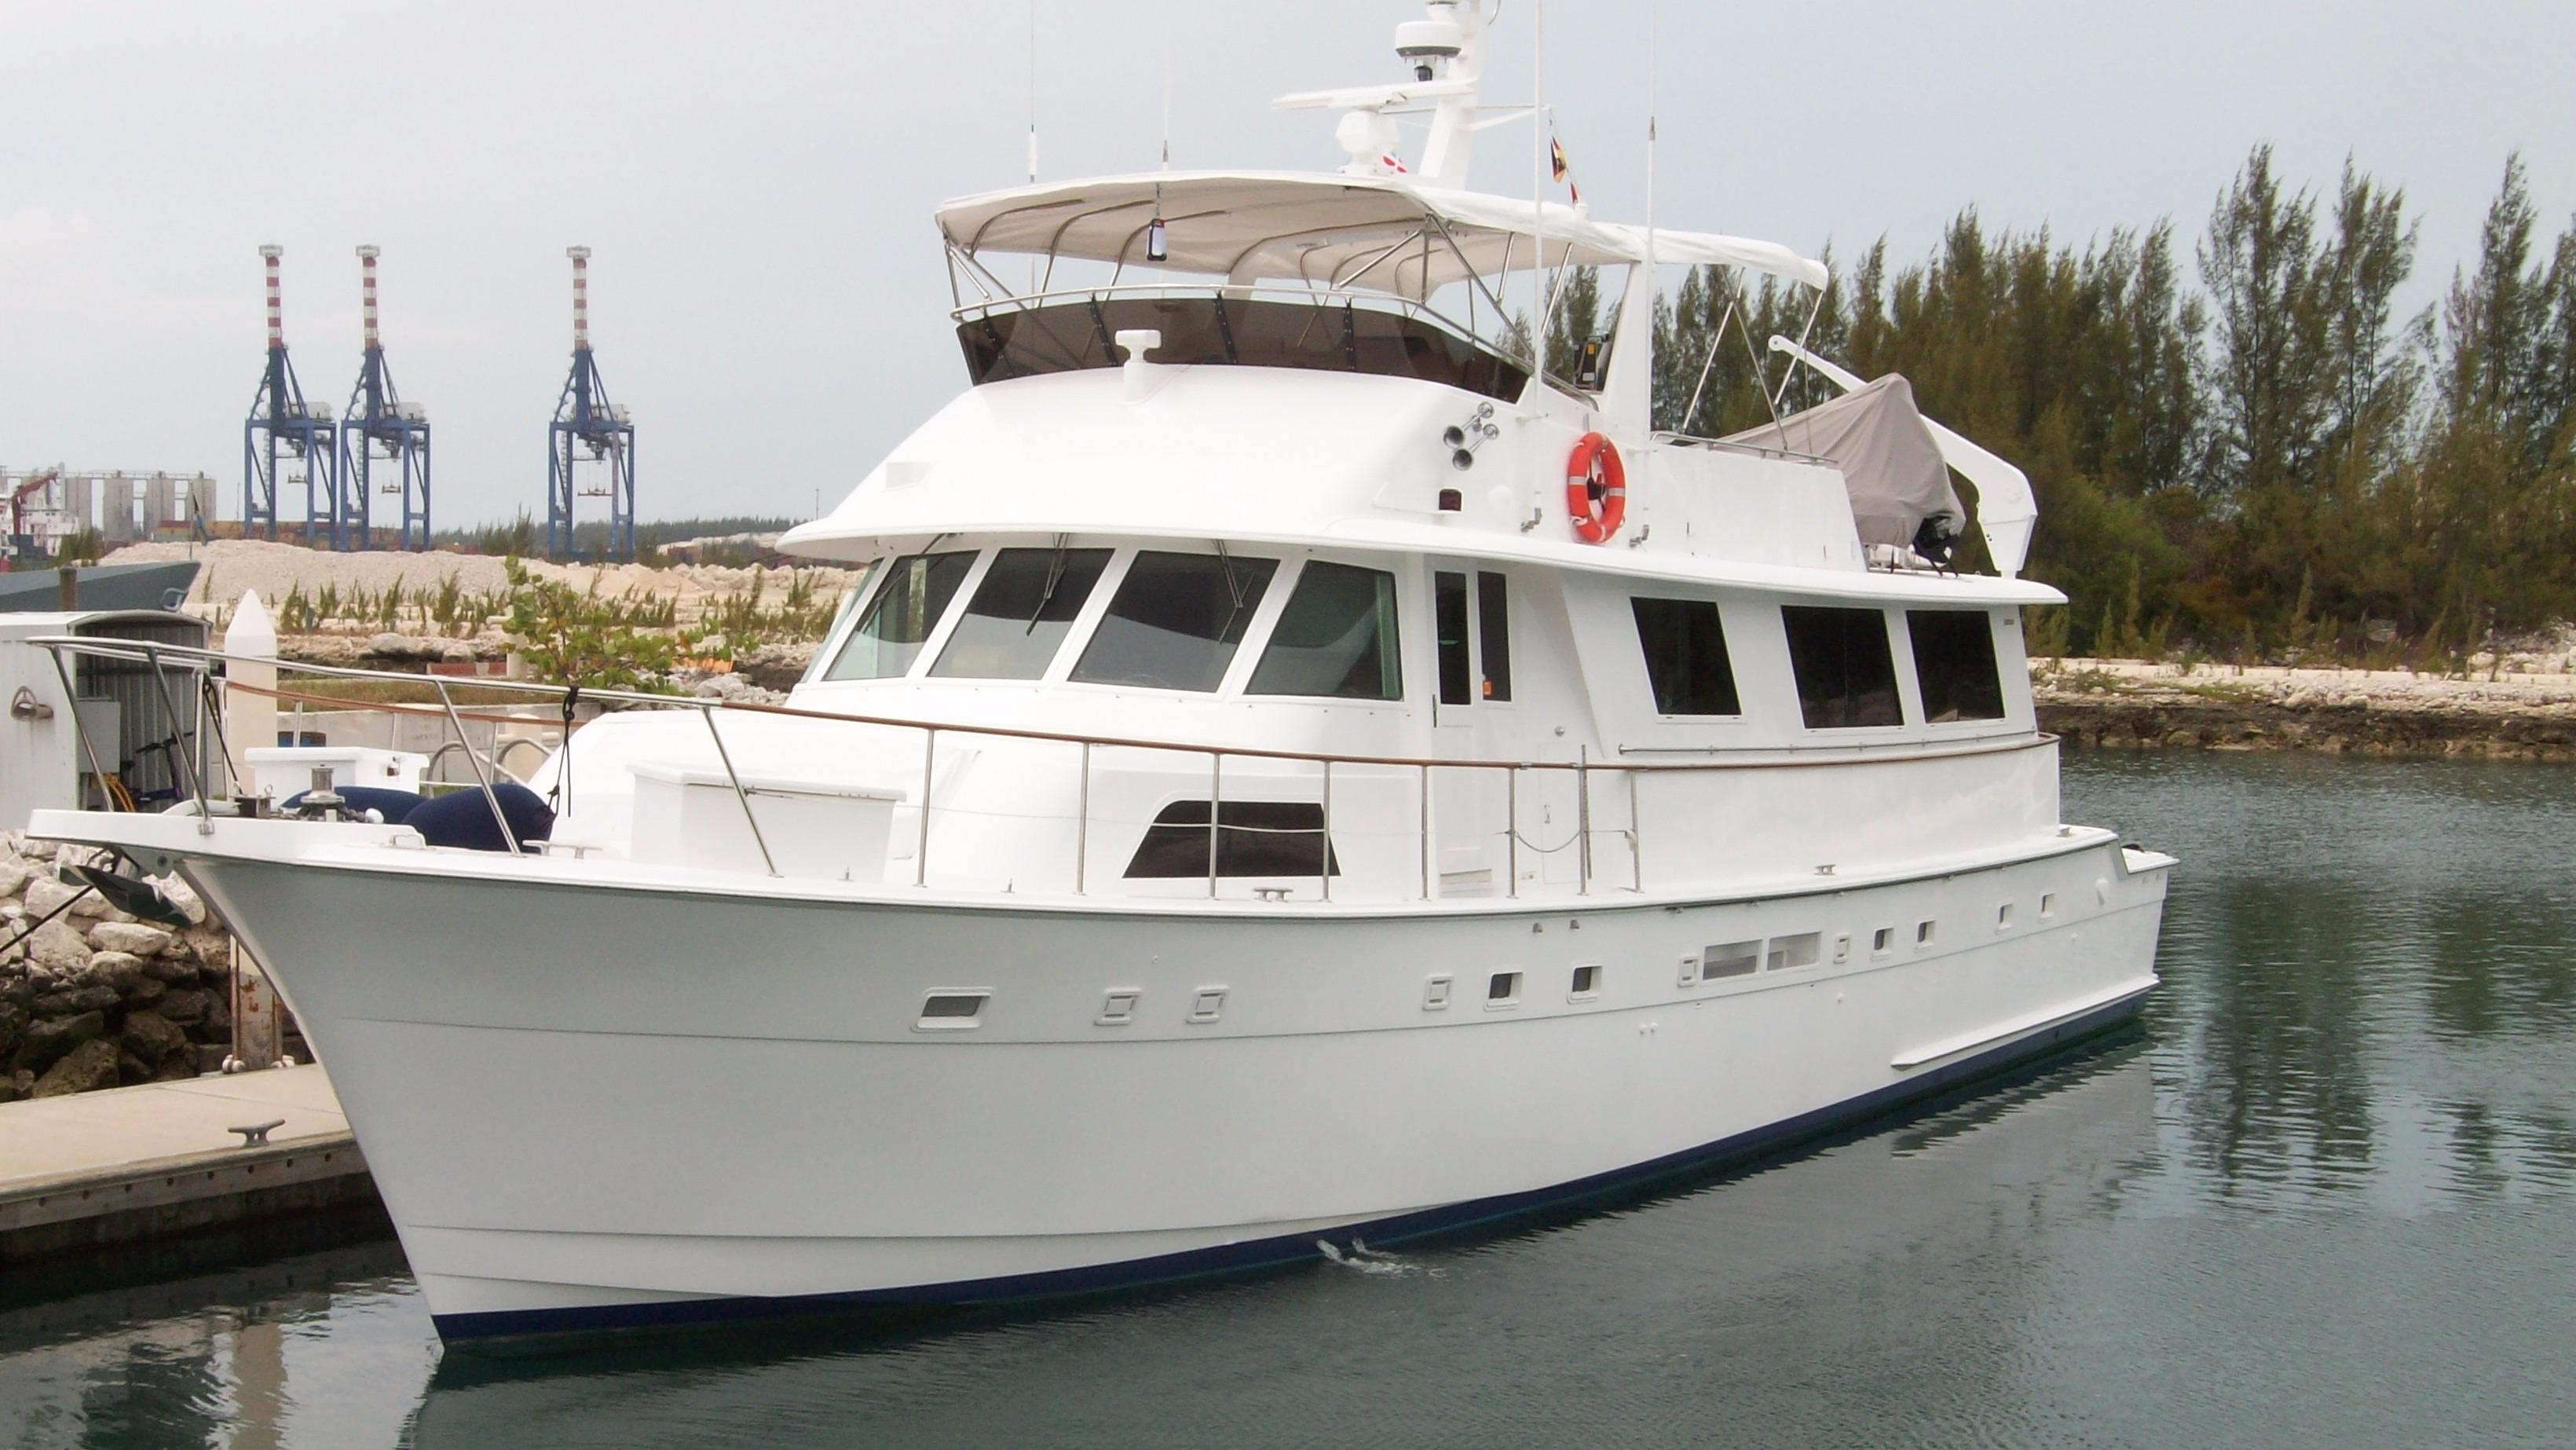 72 hatteras 1986 lady elyse for sale in fort lauderdale for Hatteras motor yacht for sale